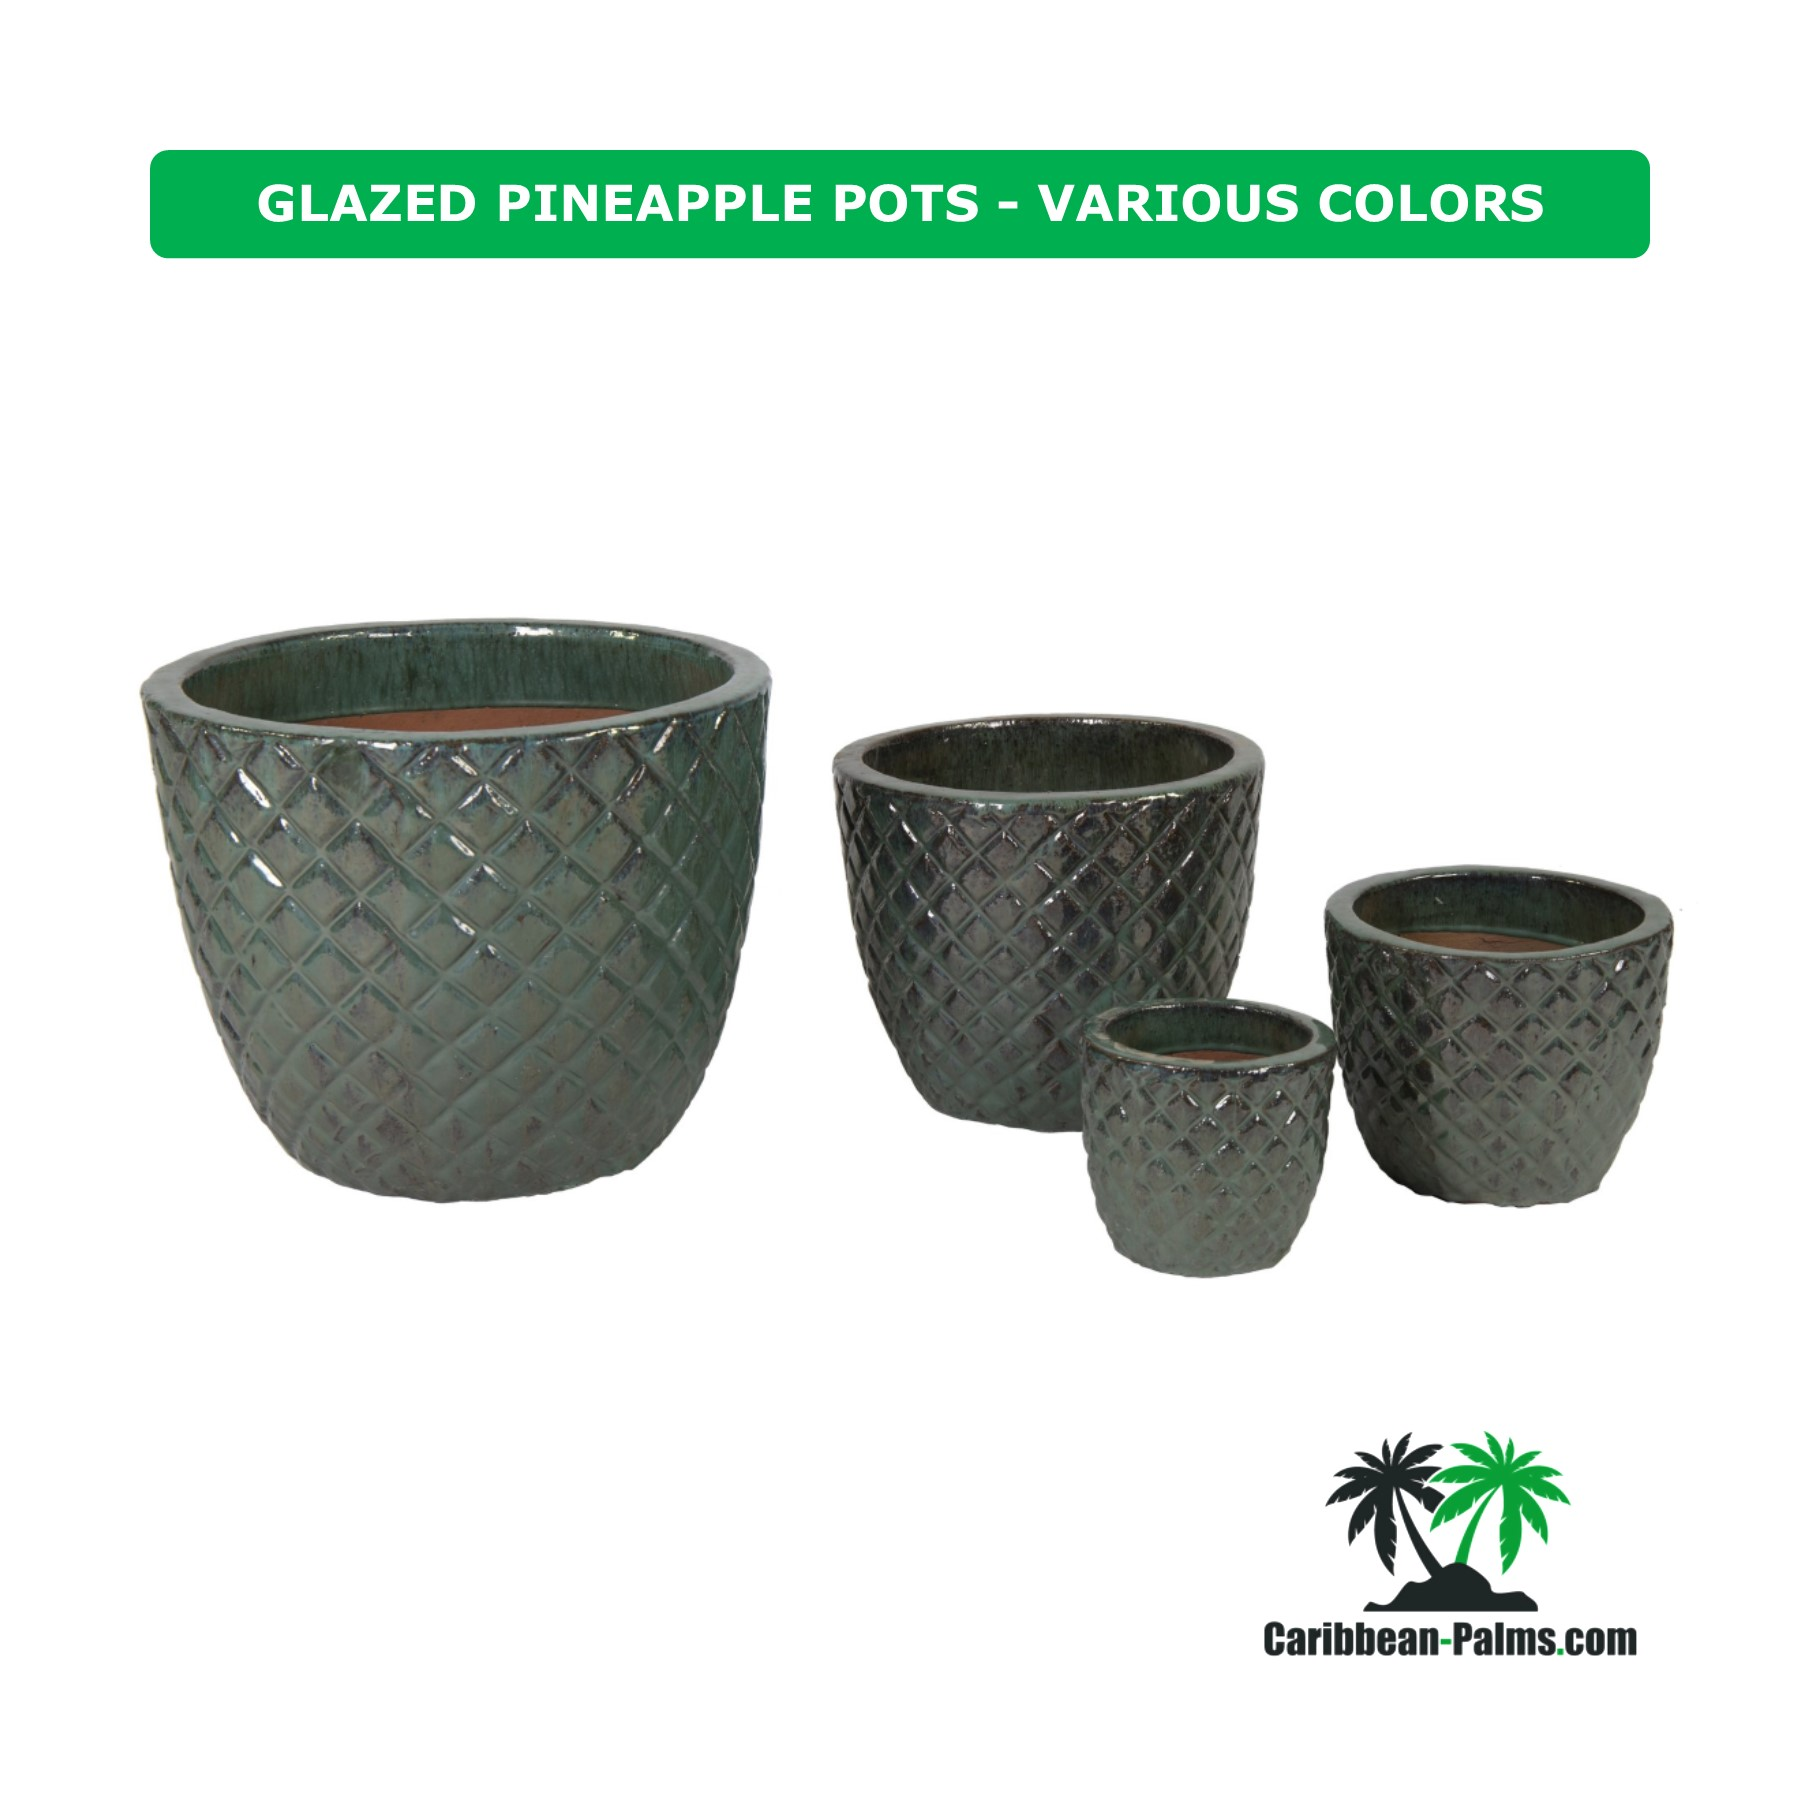 GLAZED PINEAPPLE POTS VARIOUS COLORS